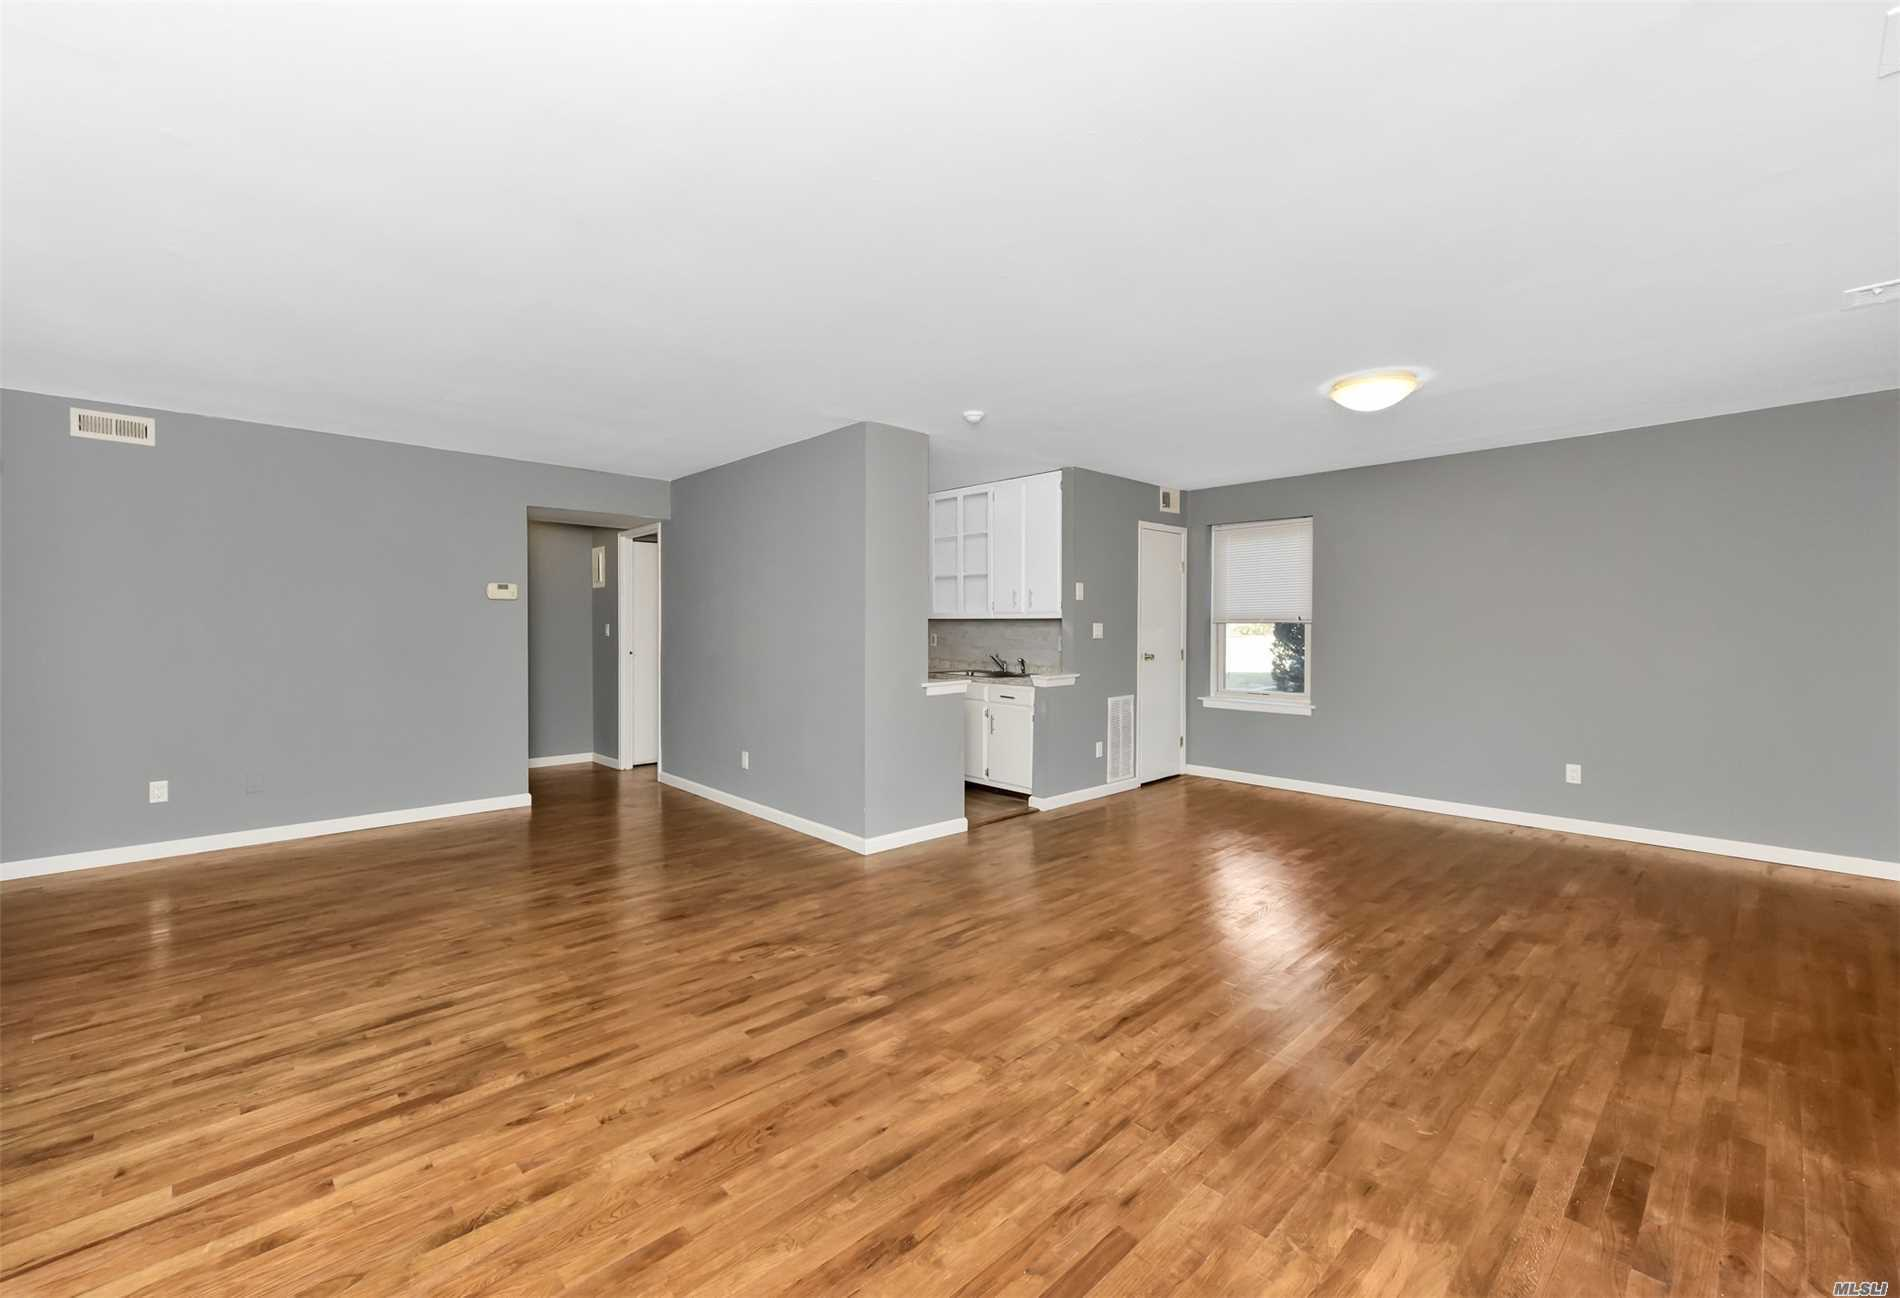 YOU HAVE A SECOND CHANCE!! DON'T MISS THIS OPPORTUNITY AGAIN!! Beautiful Blair Unit For Sale In Artist Lake!! Corner/Lower Level Unit. Close To Parking. Recently Underwent A Major Make Over!! 2 Bedroom 2 Full Baths W/ An Open Concept Layout. Super Low Low Low Taxes!! Cac/Gas Heat!! Perfect For A 1st Time Homebuyer, Downsizing Or A Rental Property. Needs Nothing Just Move Right In!! Enjoy An Olympic Sized Pool, 2 Gyms, Suana, Club House, Dog Park, Playground, & More!! Why Rent When You Can Own?!